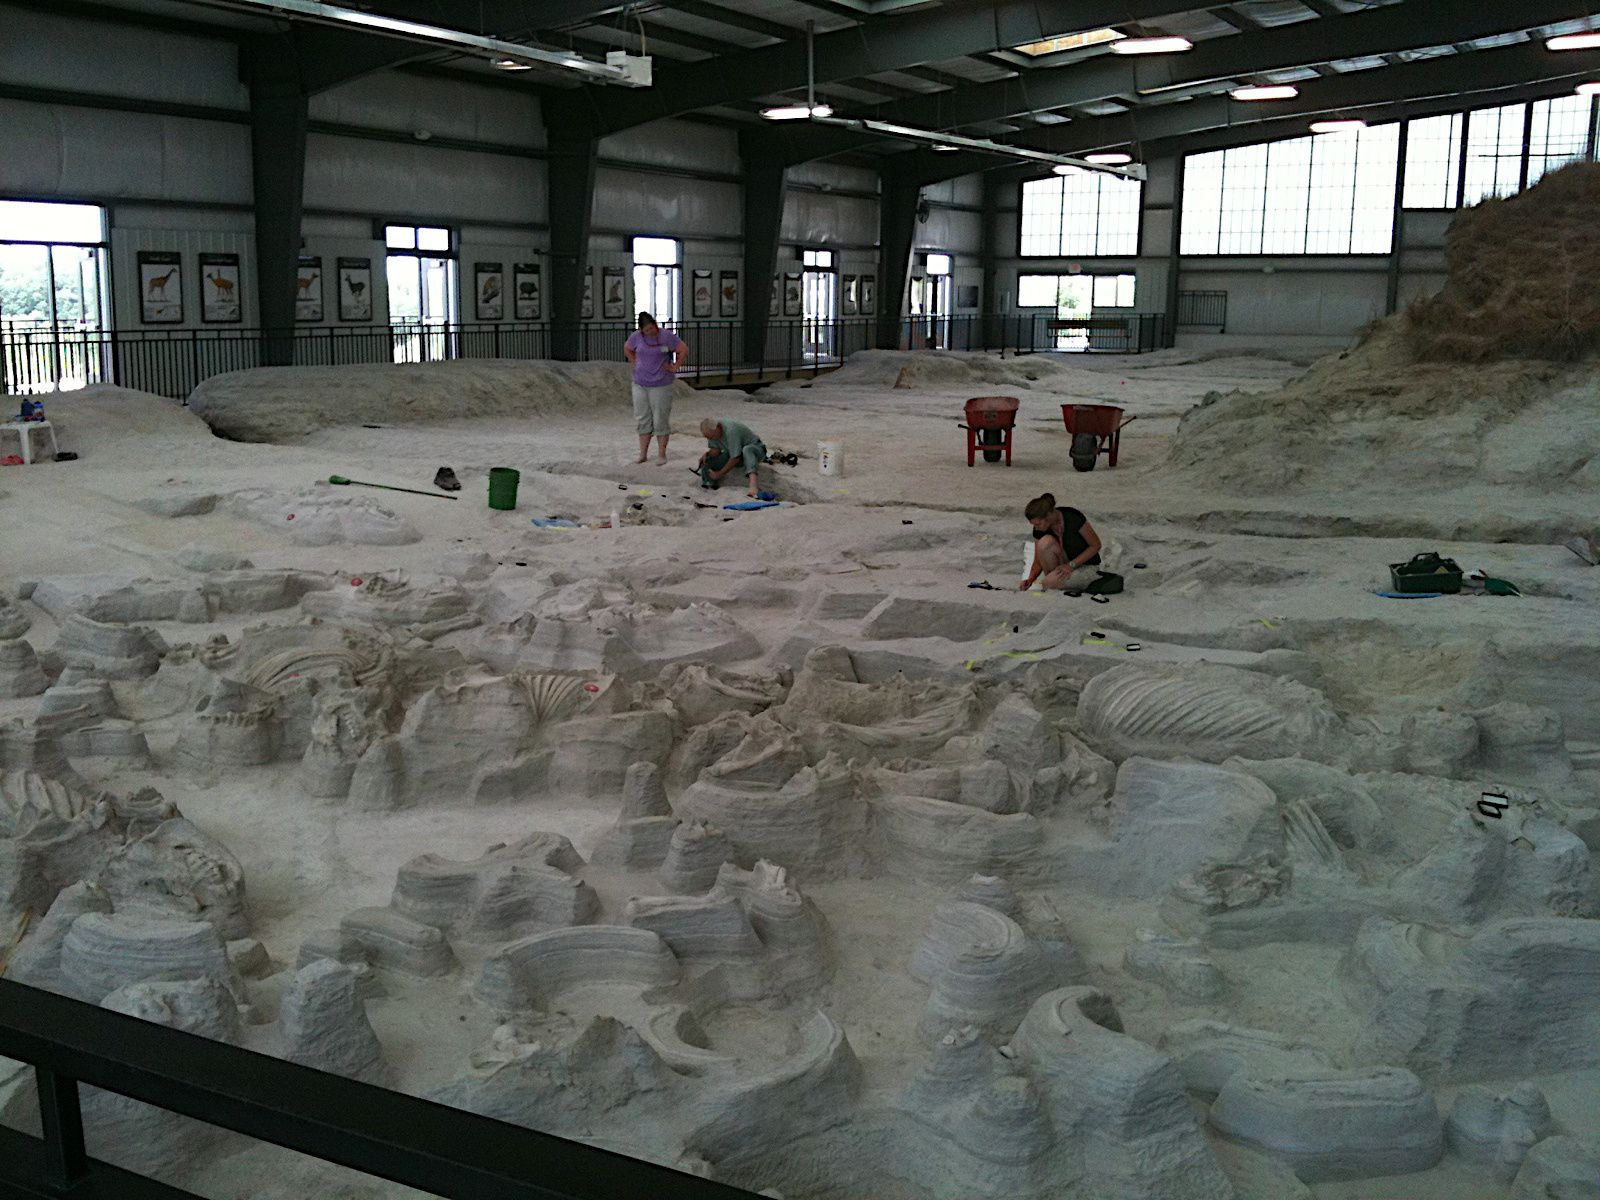 Ashfall Fossil Beds & Fossil Vacations, Royal, Nebraska